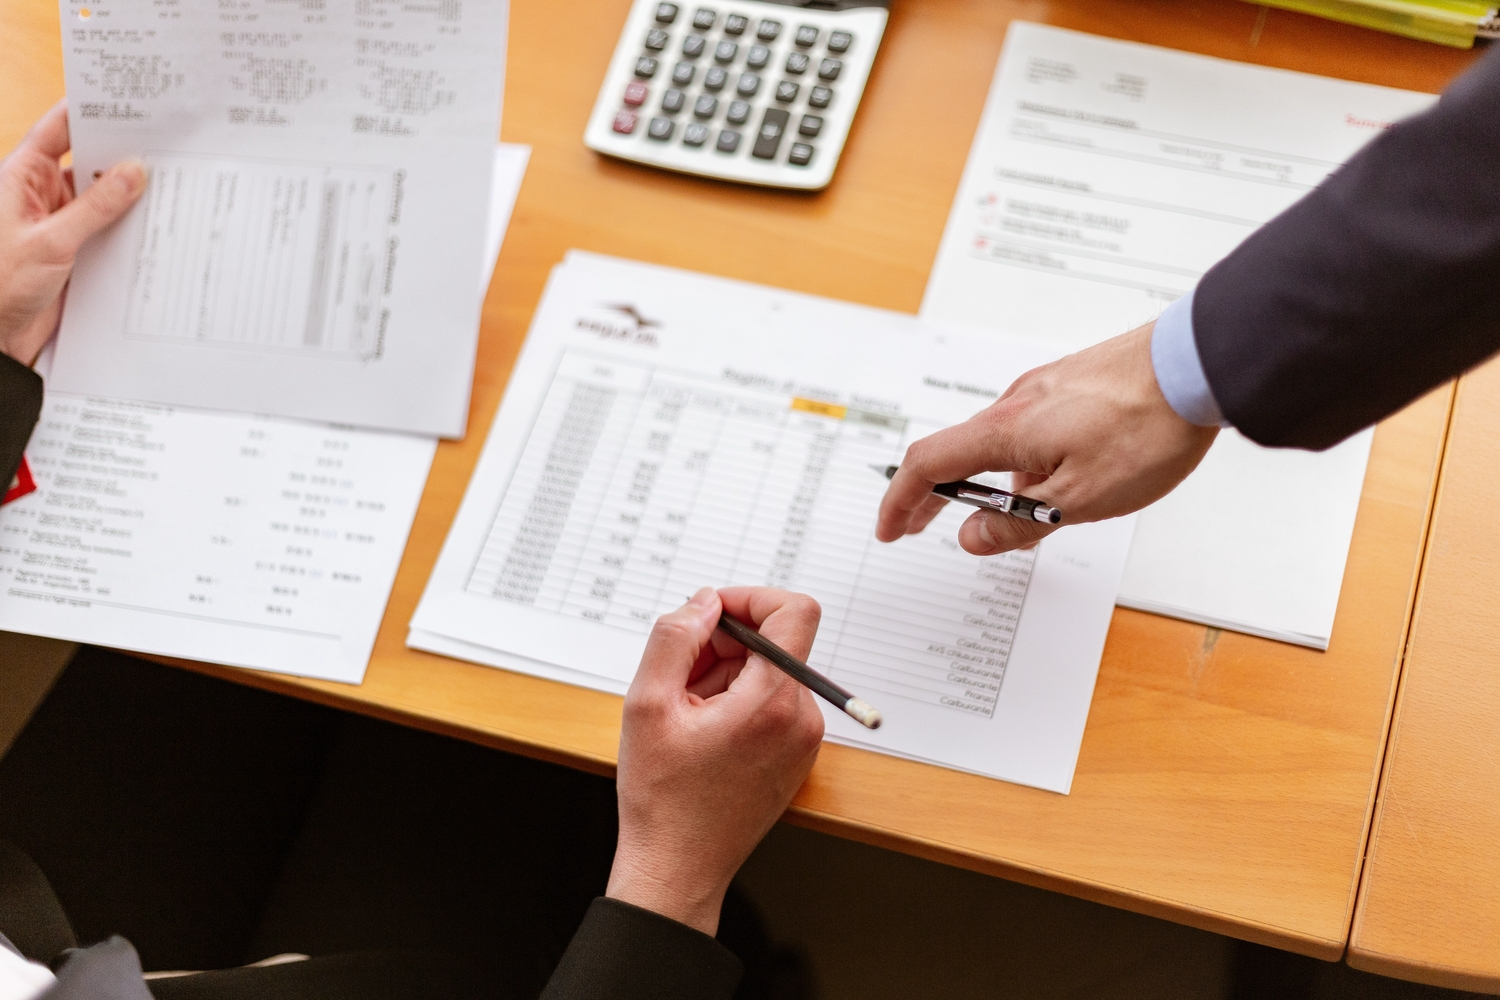 Accountant resting their hand on table with calculator and papers